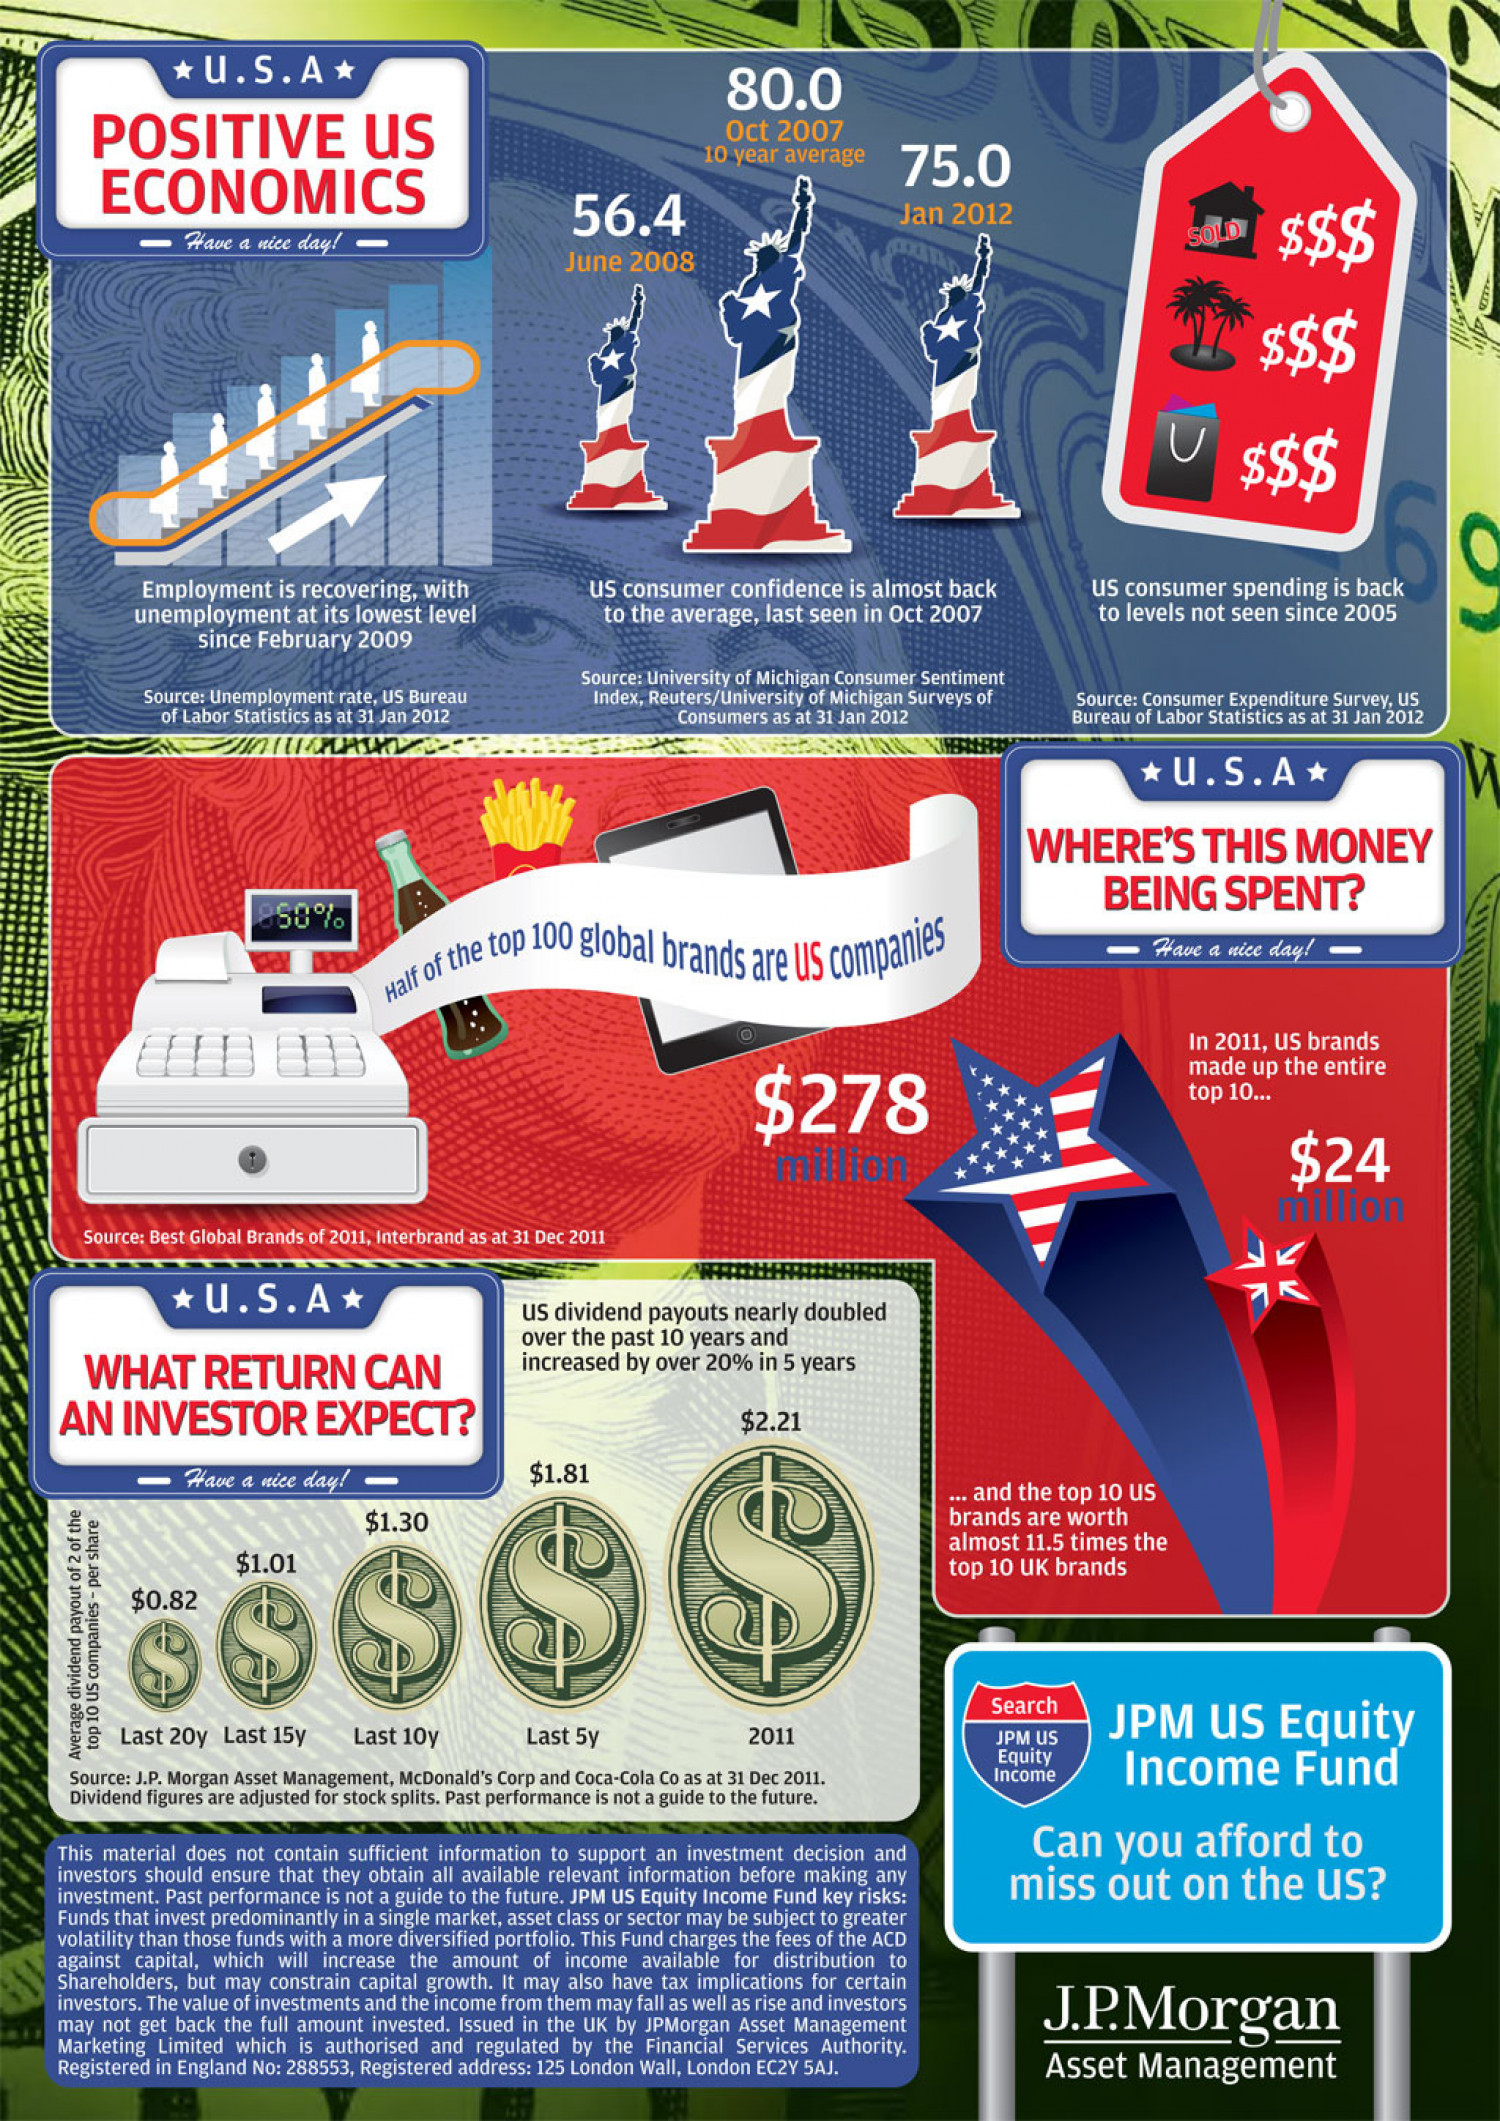 Can You Afford to Miss Out on the US? Infographic